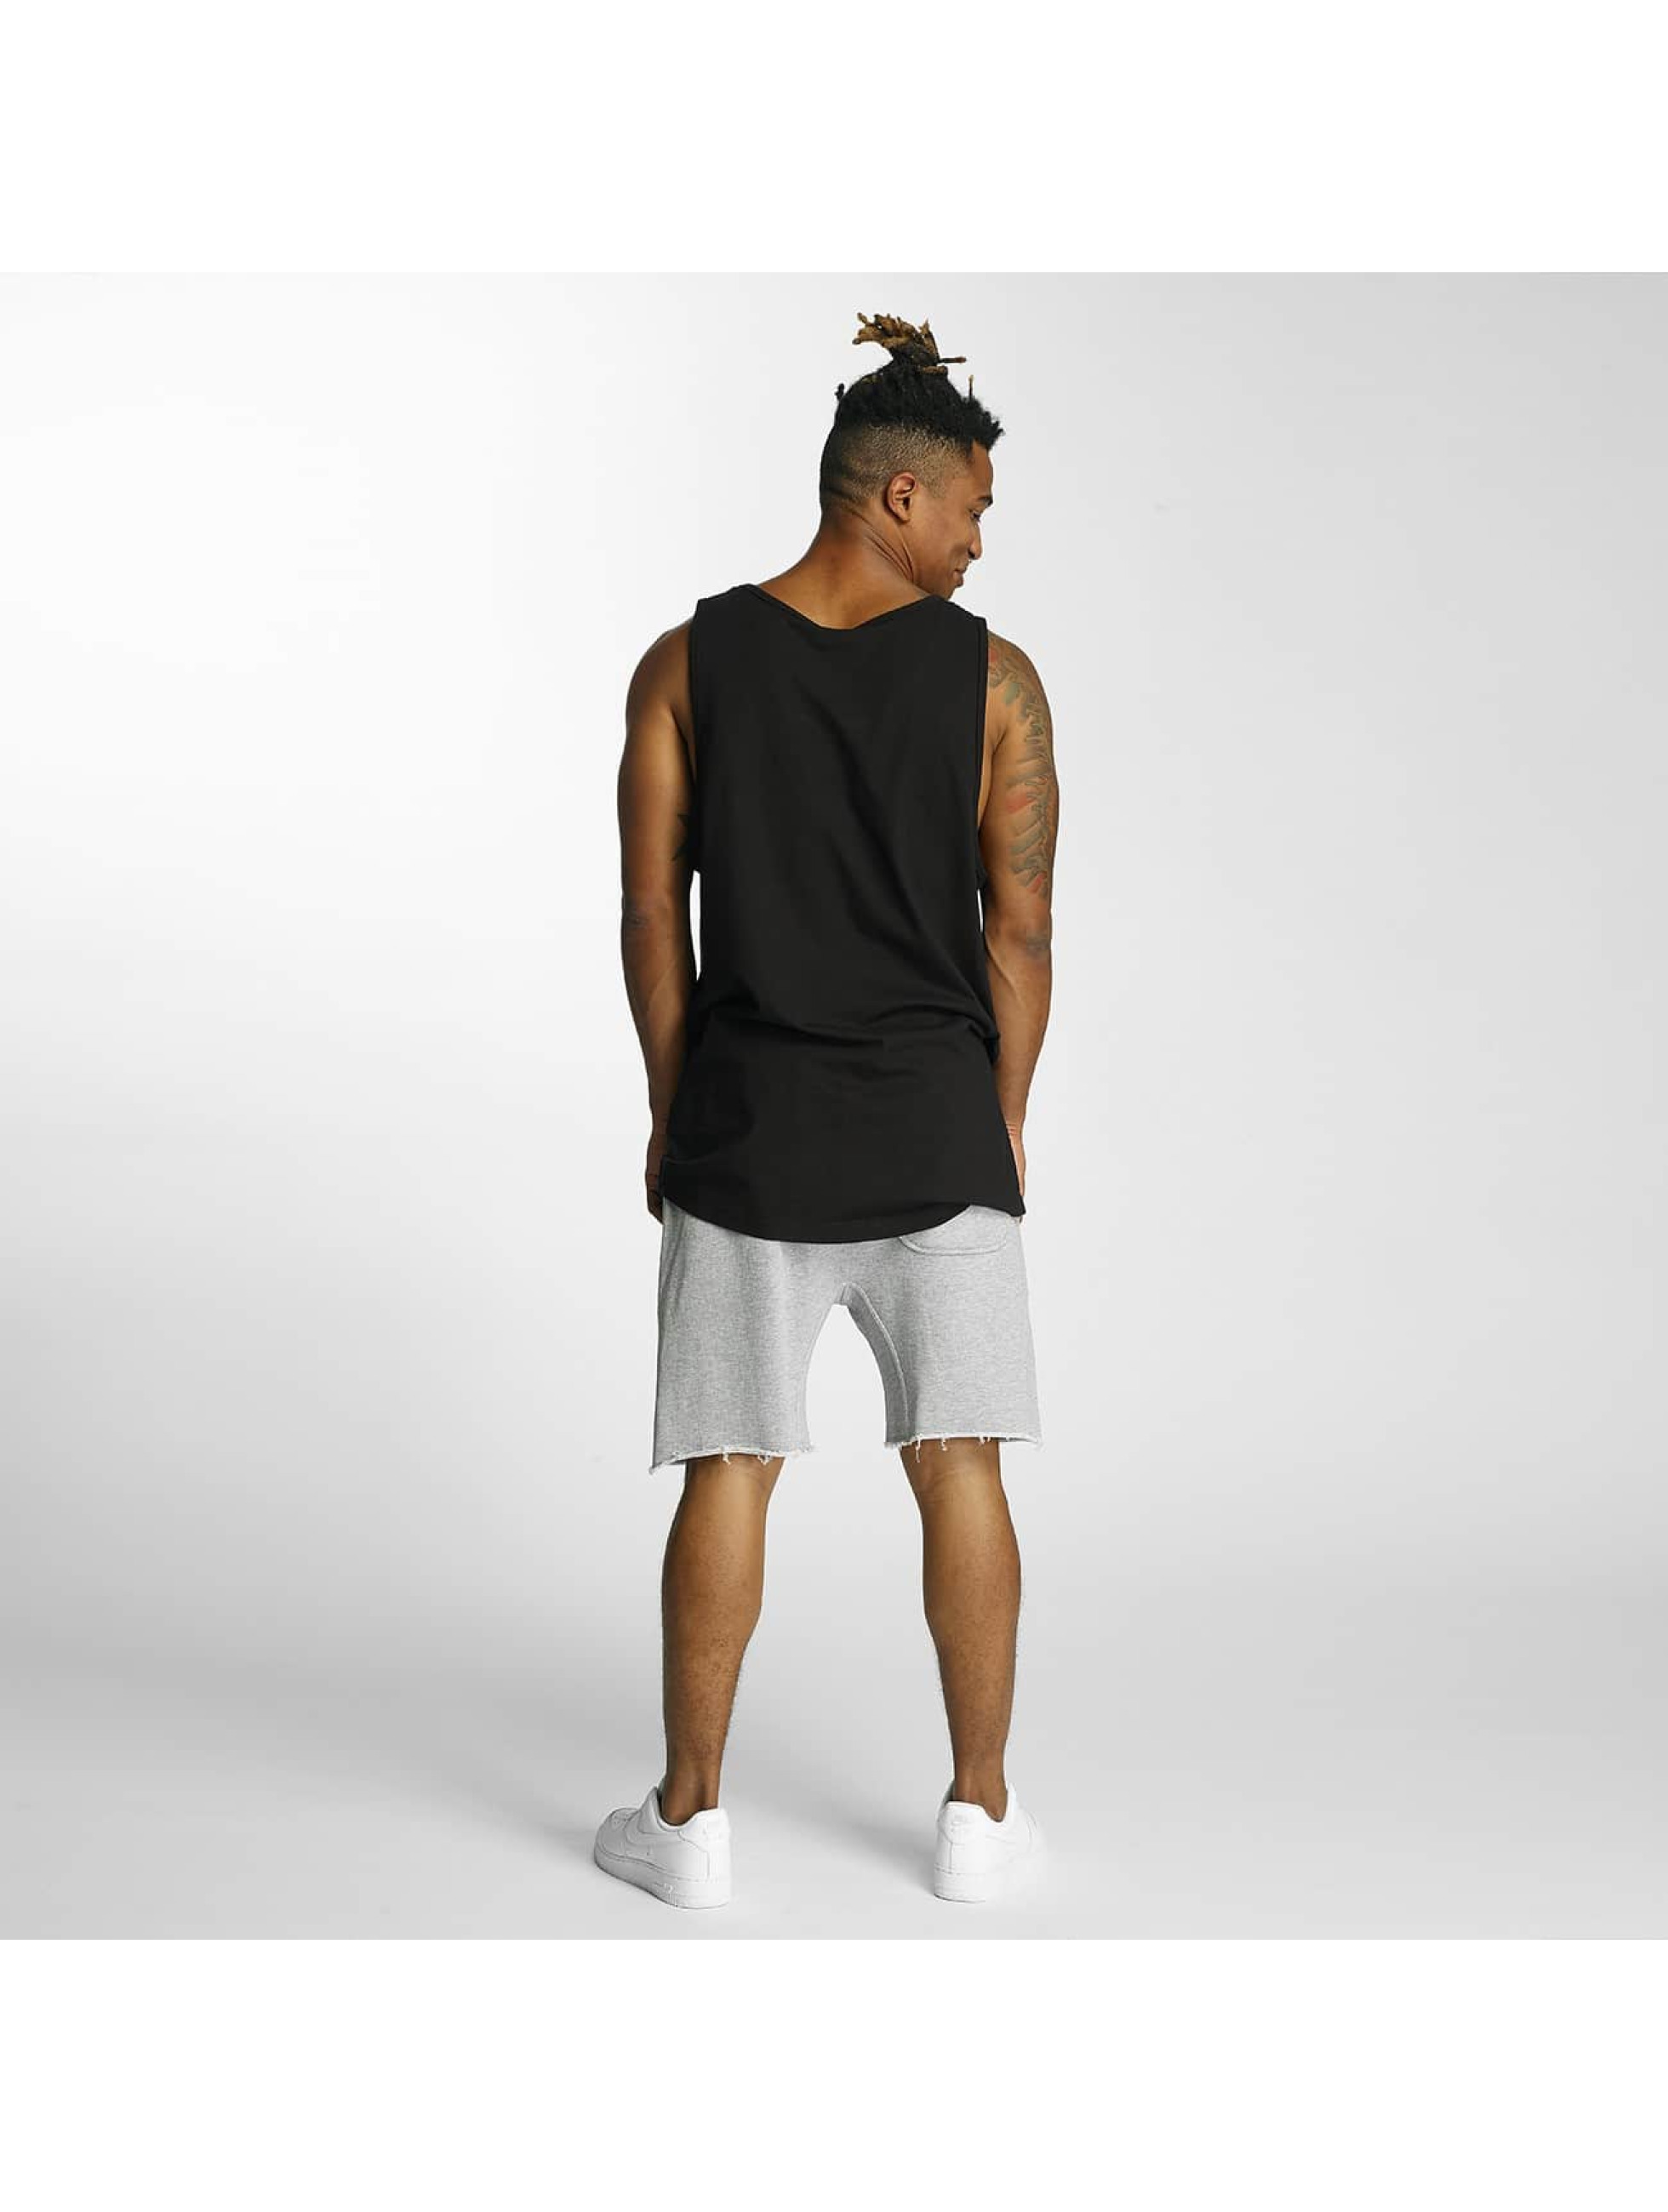 Kingin Tank Tops LK nero